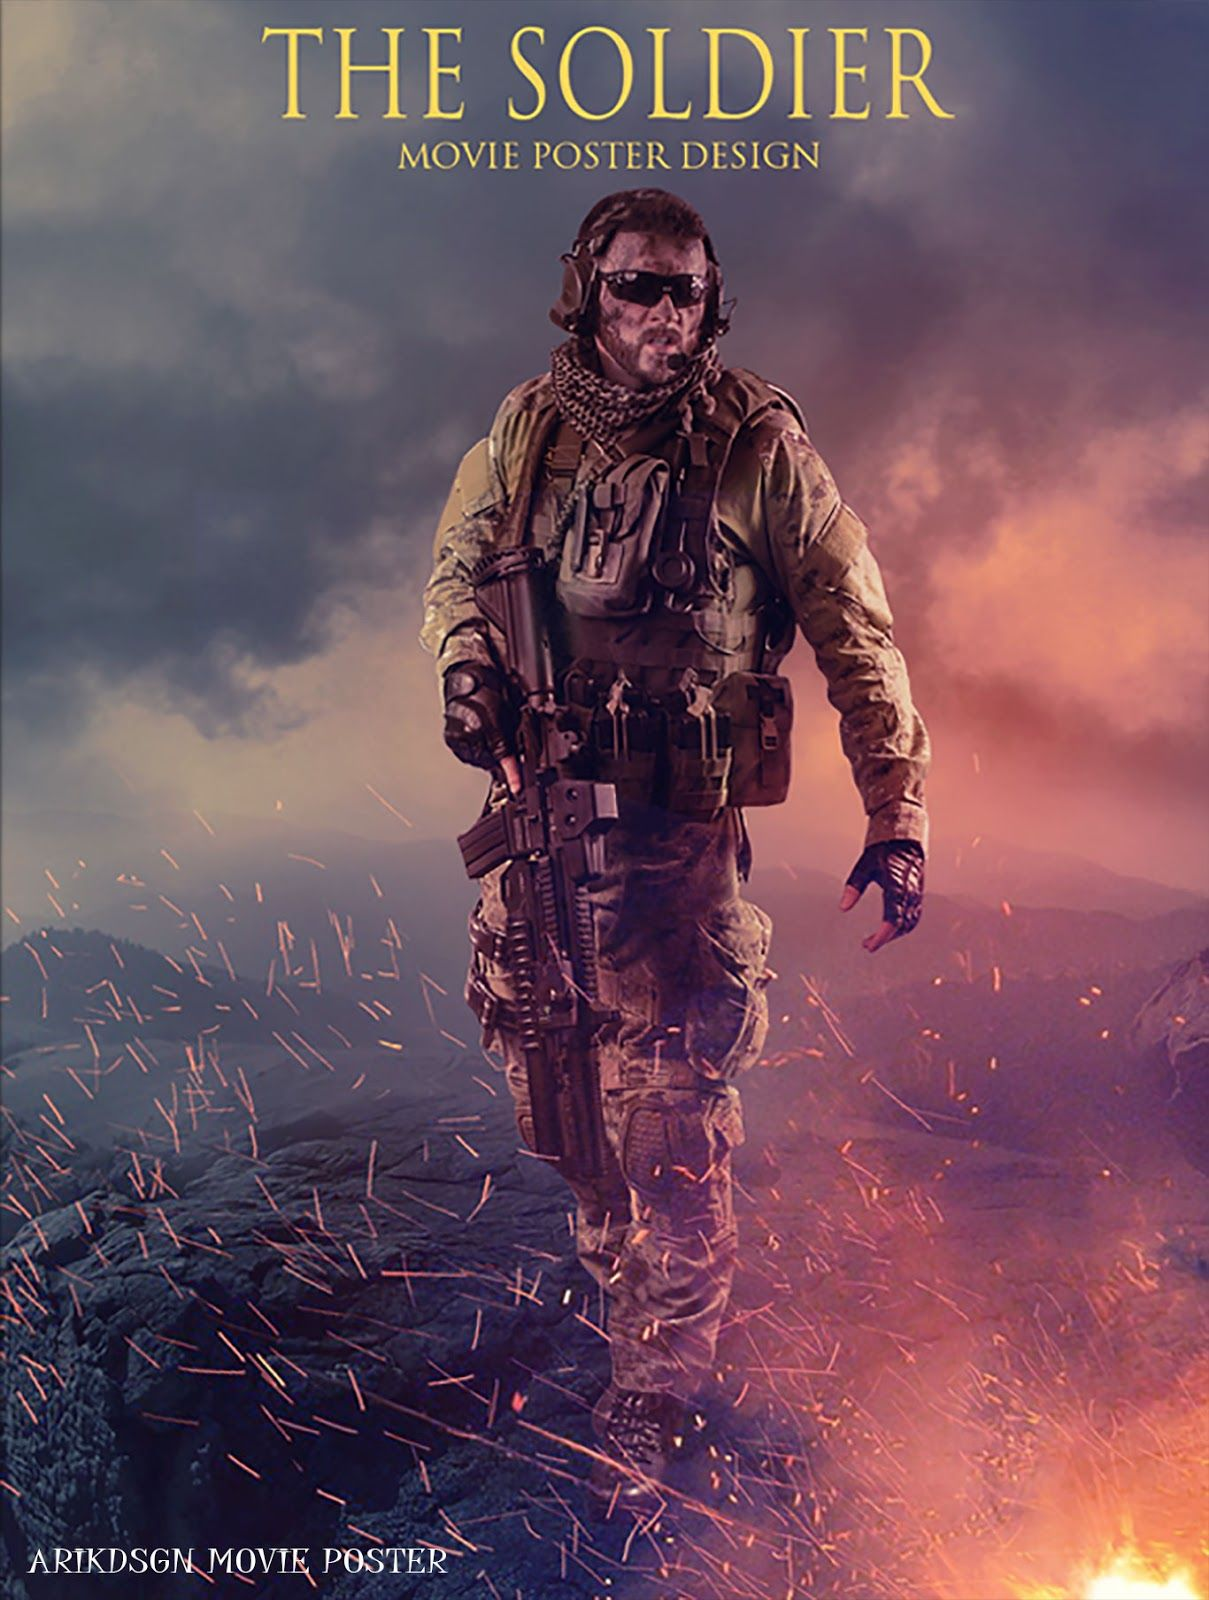 Photoshop poster design youtube - Today We Will Learn How To Create The Soldier Movie Poster Design Photo Manipulation In Photoshop